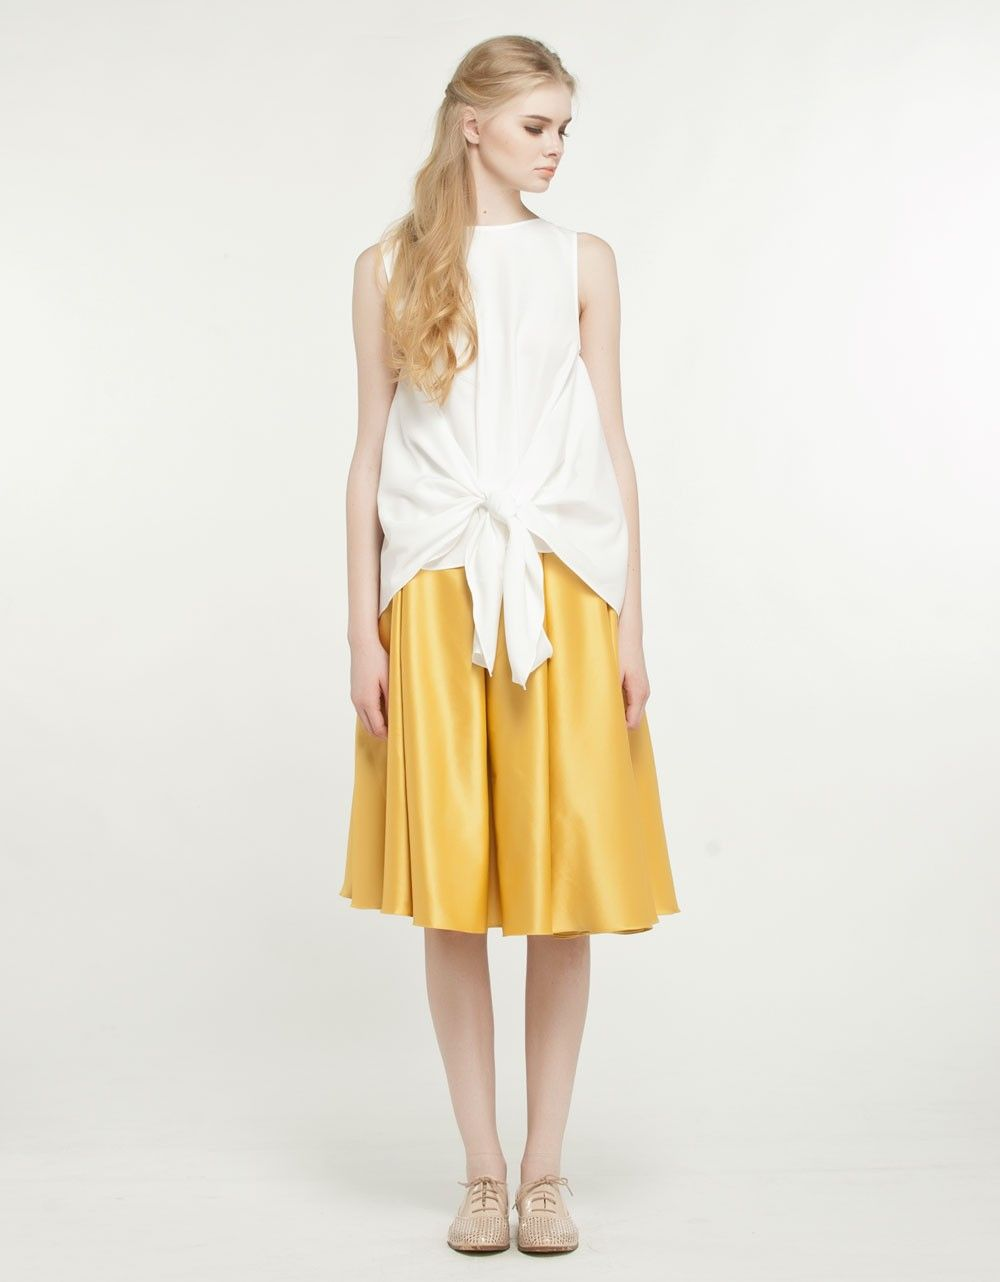 this outfit looks like a sunny side up.